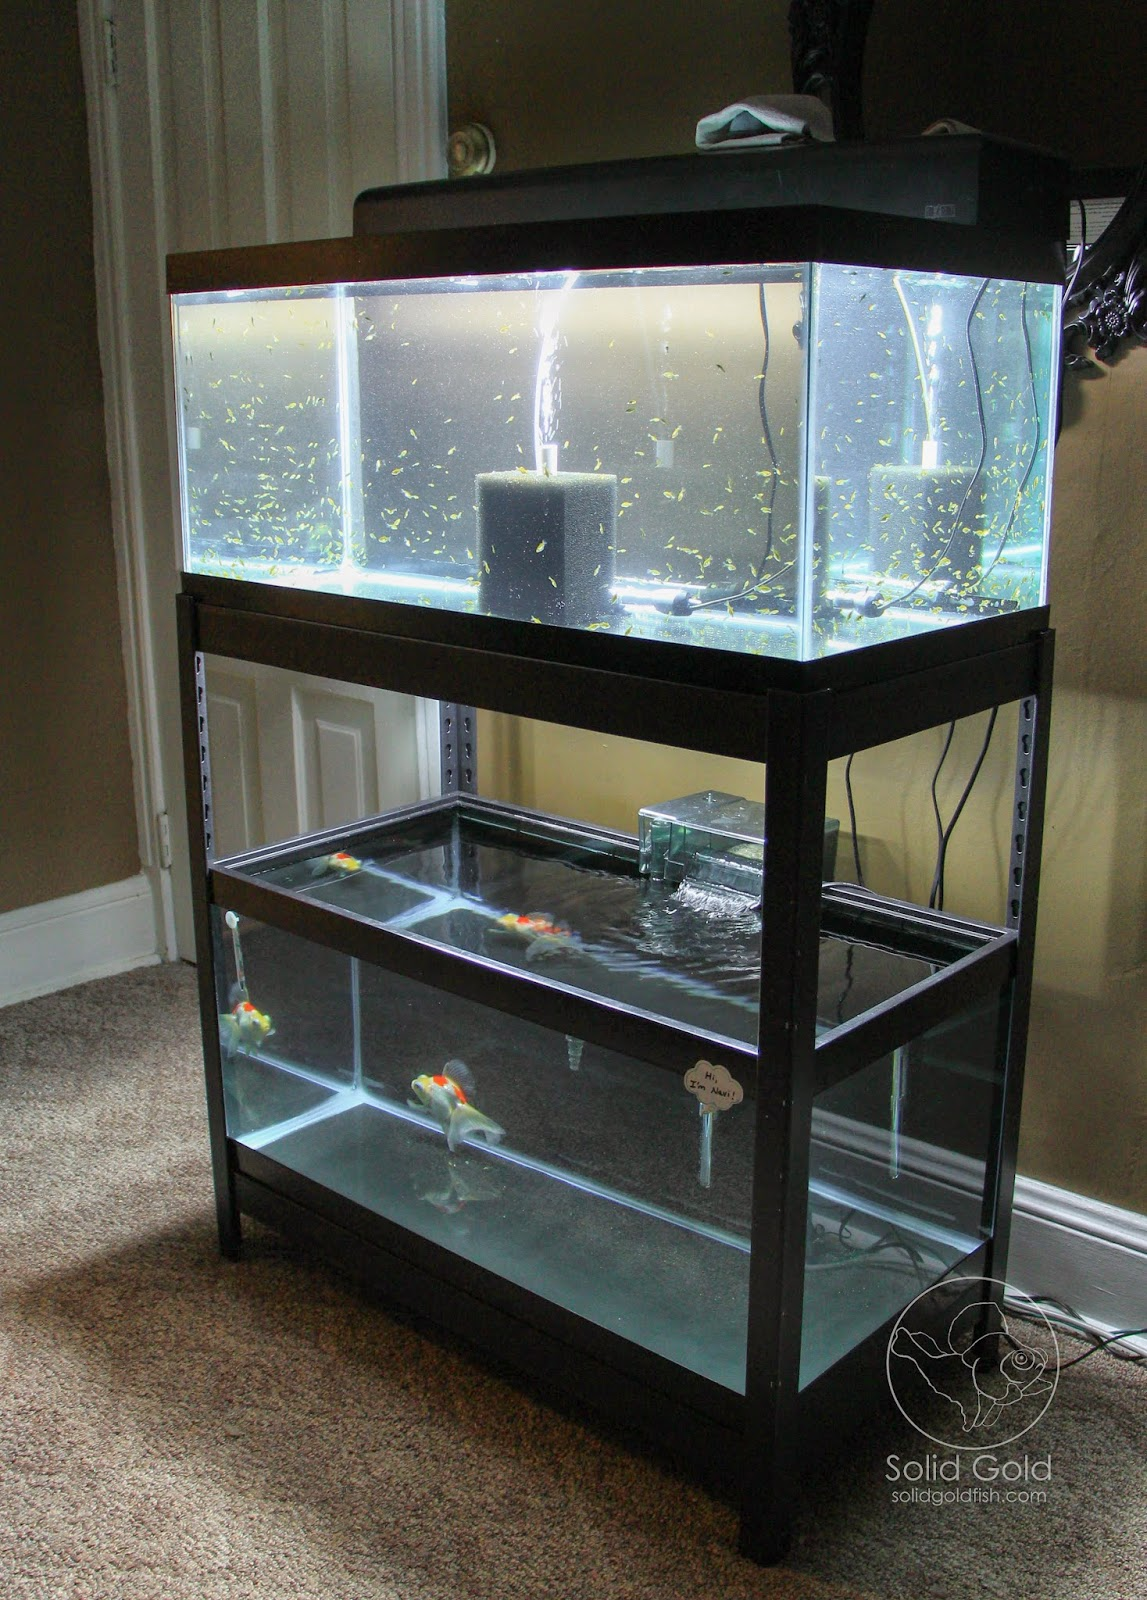 The Perfect Rack for 40 Gallon Tanks